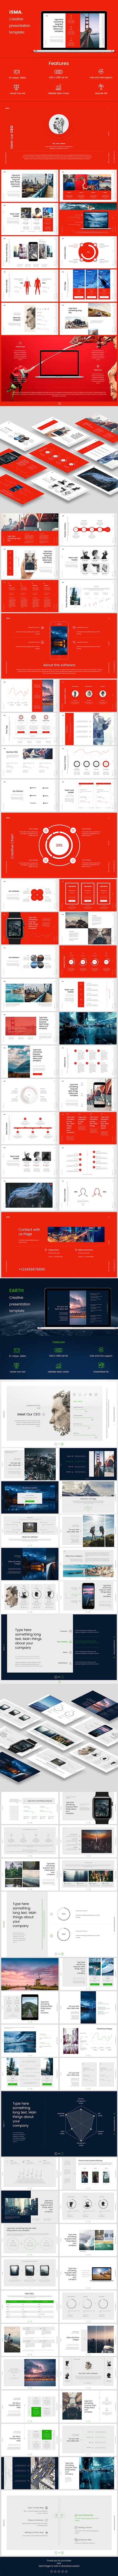 Bundle 2 in 1 - PowerPoint Templates Presentation Templates